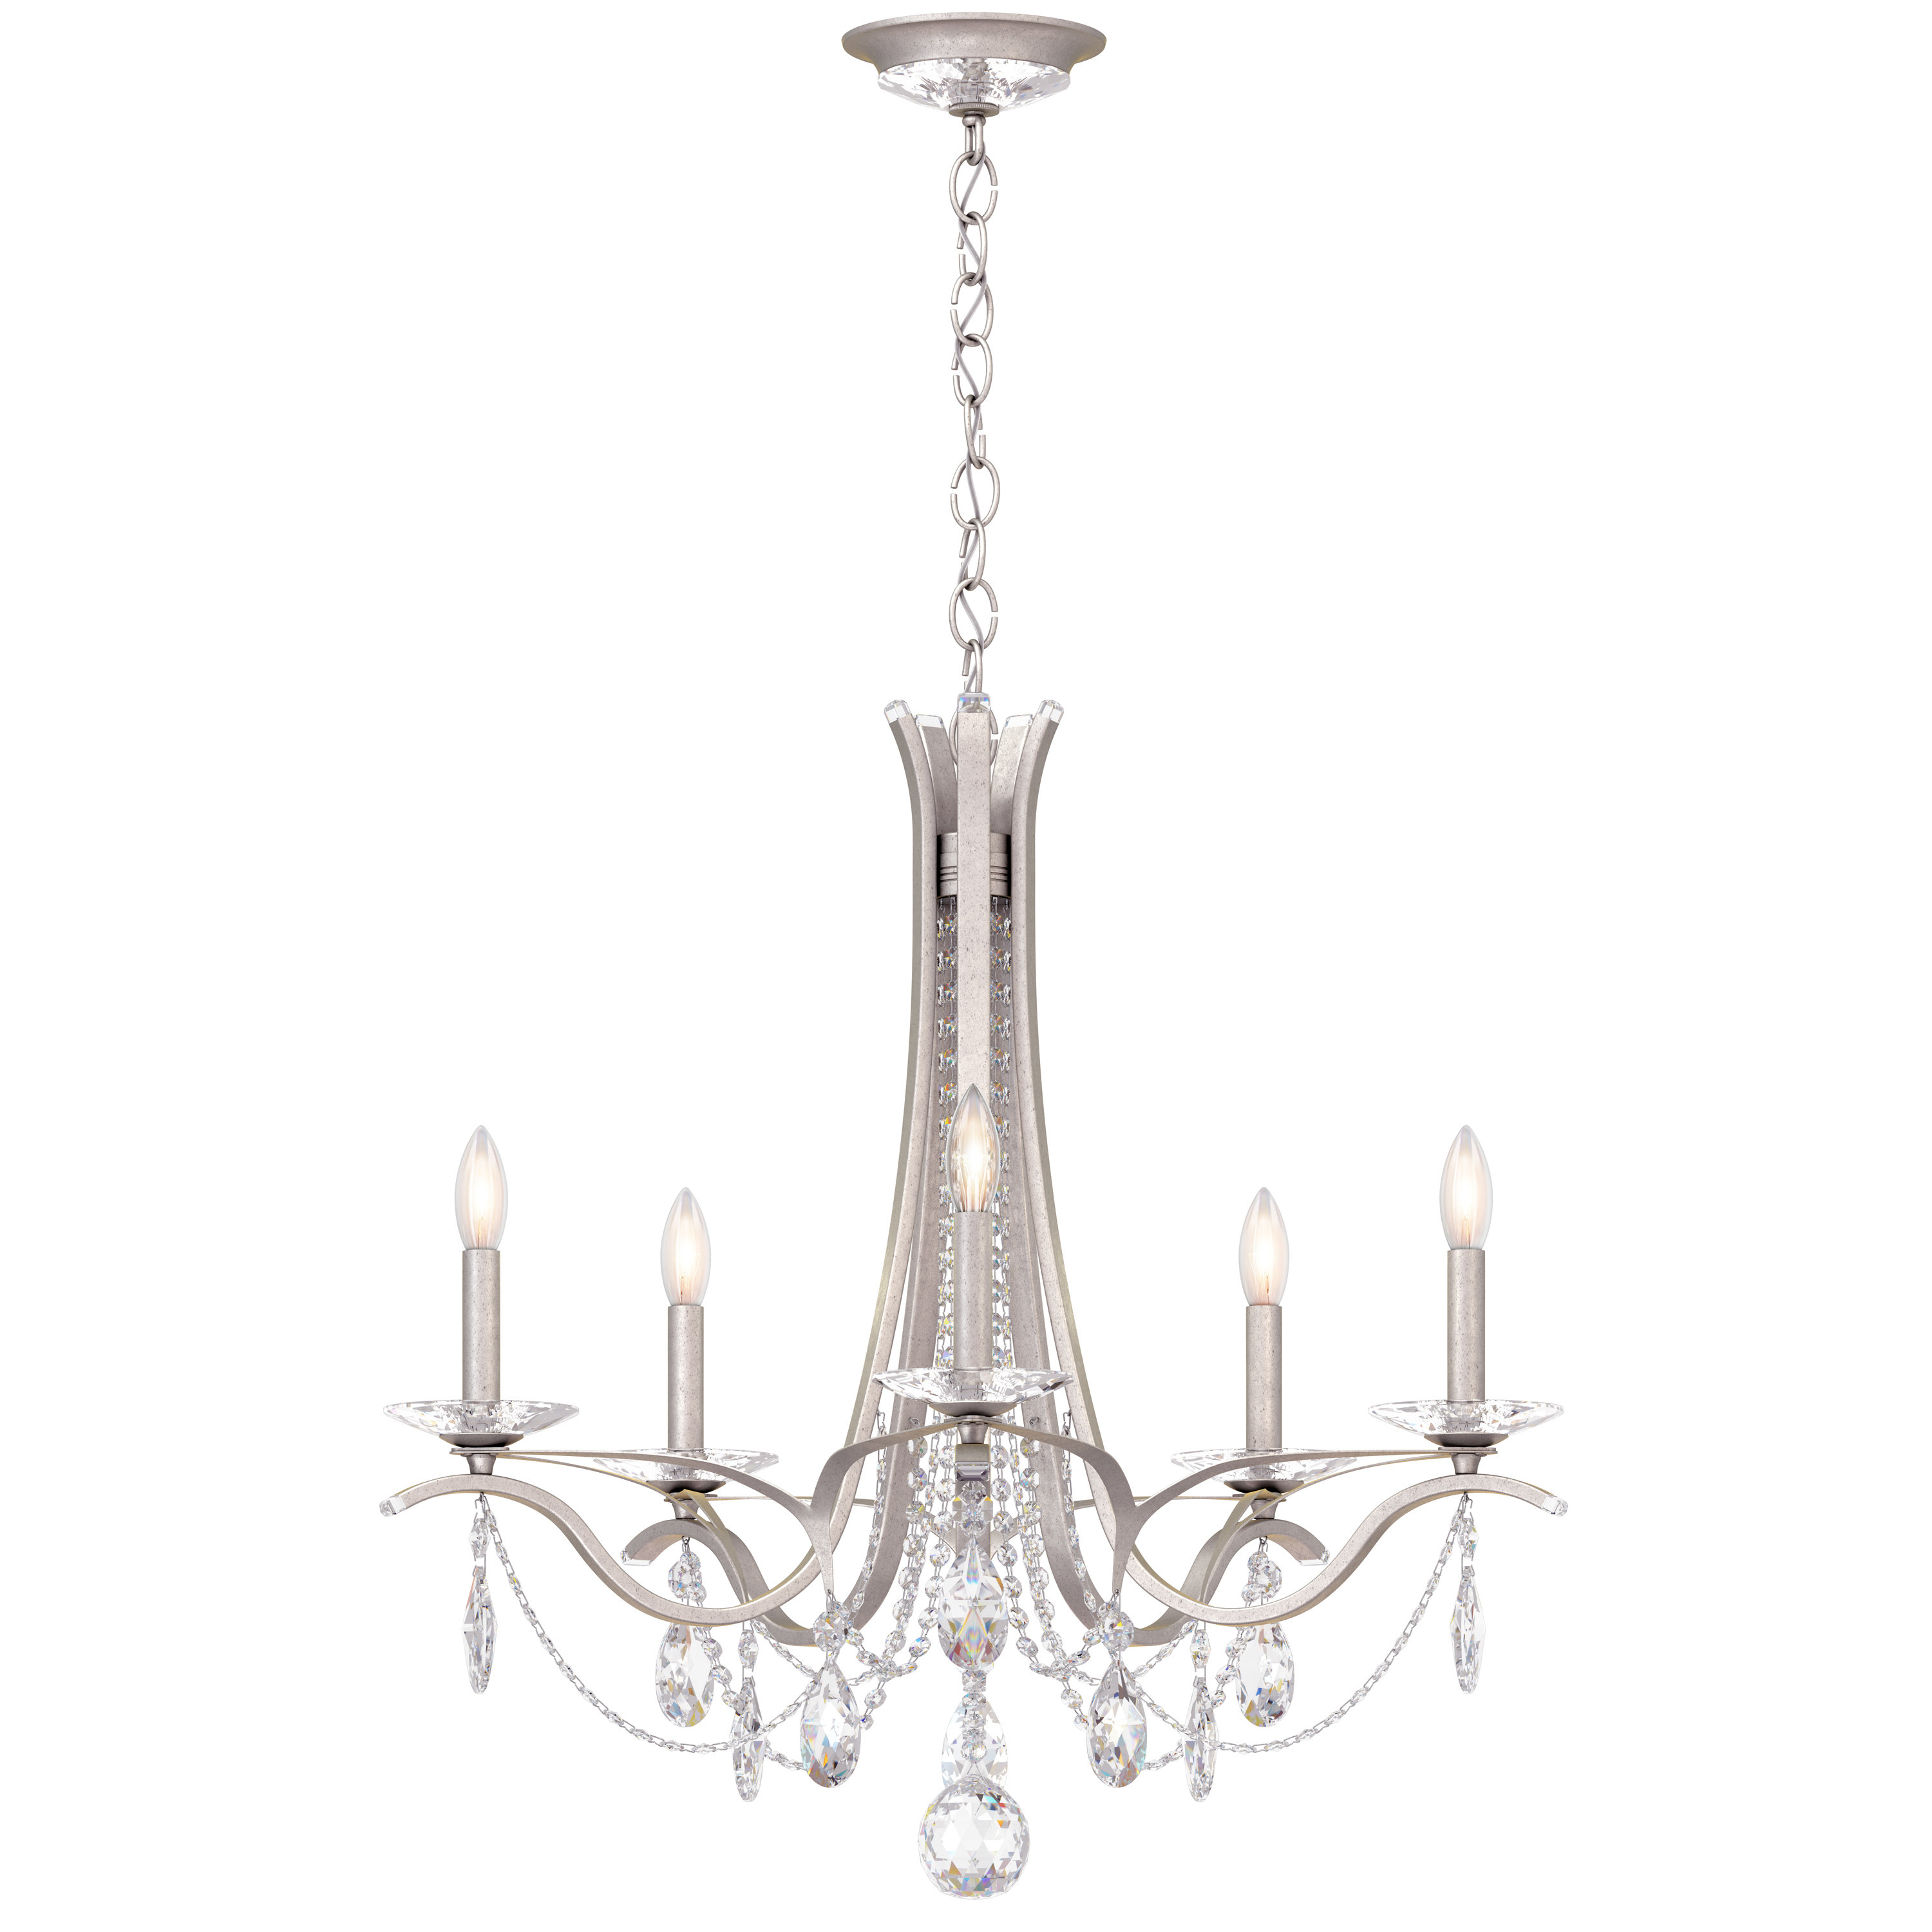 Vesca 5 Light Chandelier Intended For 2019 Berger 5 Light Candle Style Chandeliers (View 15 of 20)